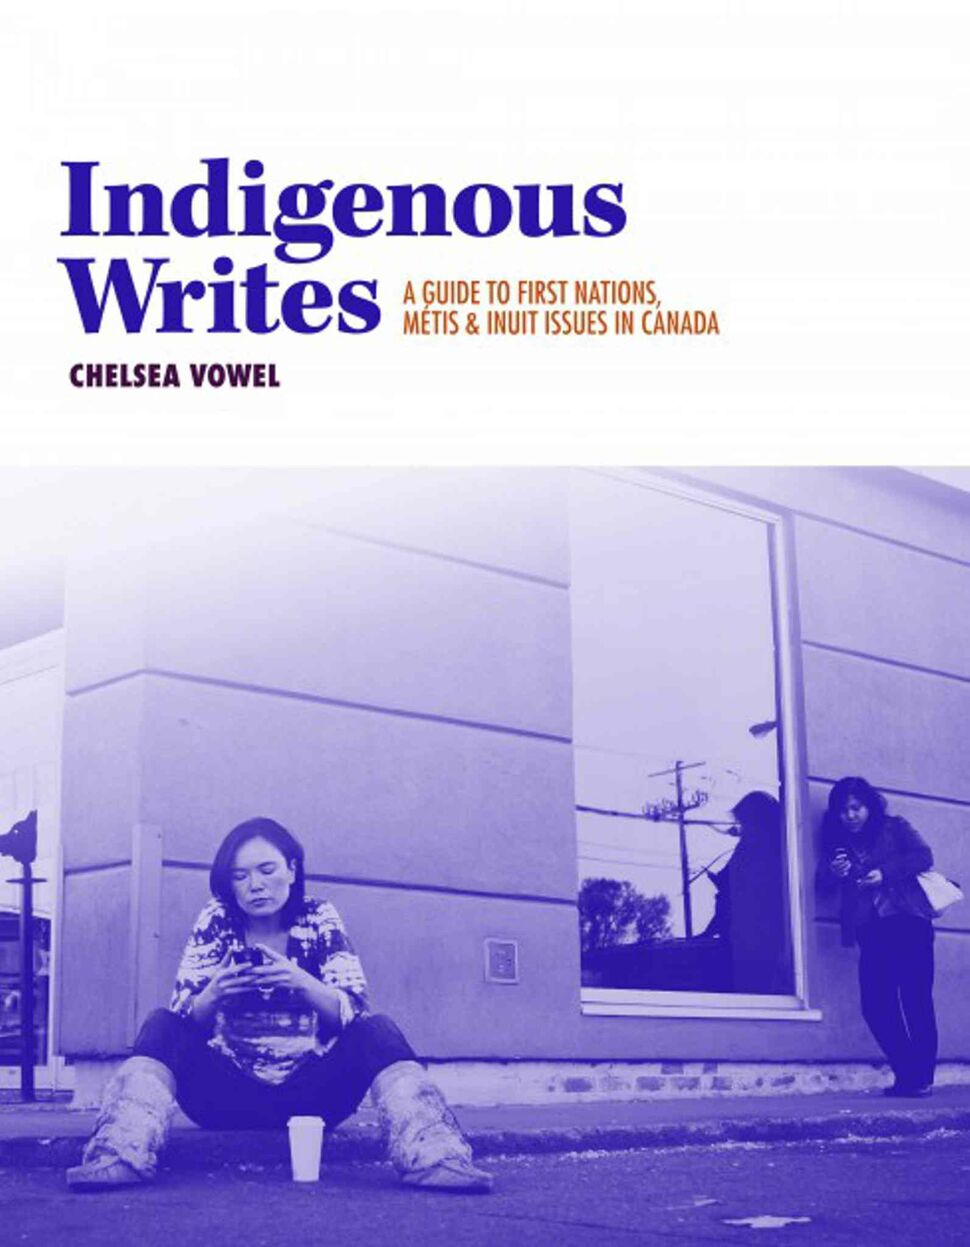 <h3>Indigenous Writes: A Guide to First Nations, Métis, and Inuit Issues in Canada</h3> <br/> By Chelsea Vowel <br/> <strong>In the face of public bigotry and ignorance, Chelsea Vowel wants to help shape our relationship as non-indigenous and indigenous Canadians by engaging us in a badly needed, non-confrontational and respectful conversation. For any Canadian who wishes to have an informed opinion about the country that we share, Indigenous Writes is essential reading.</strong> ,<br/> — Michael Dudley